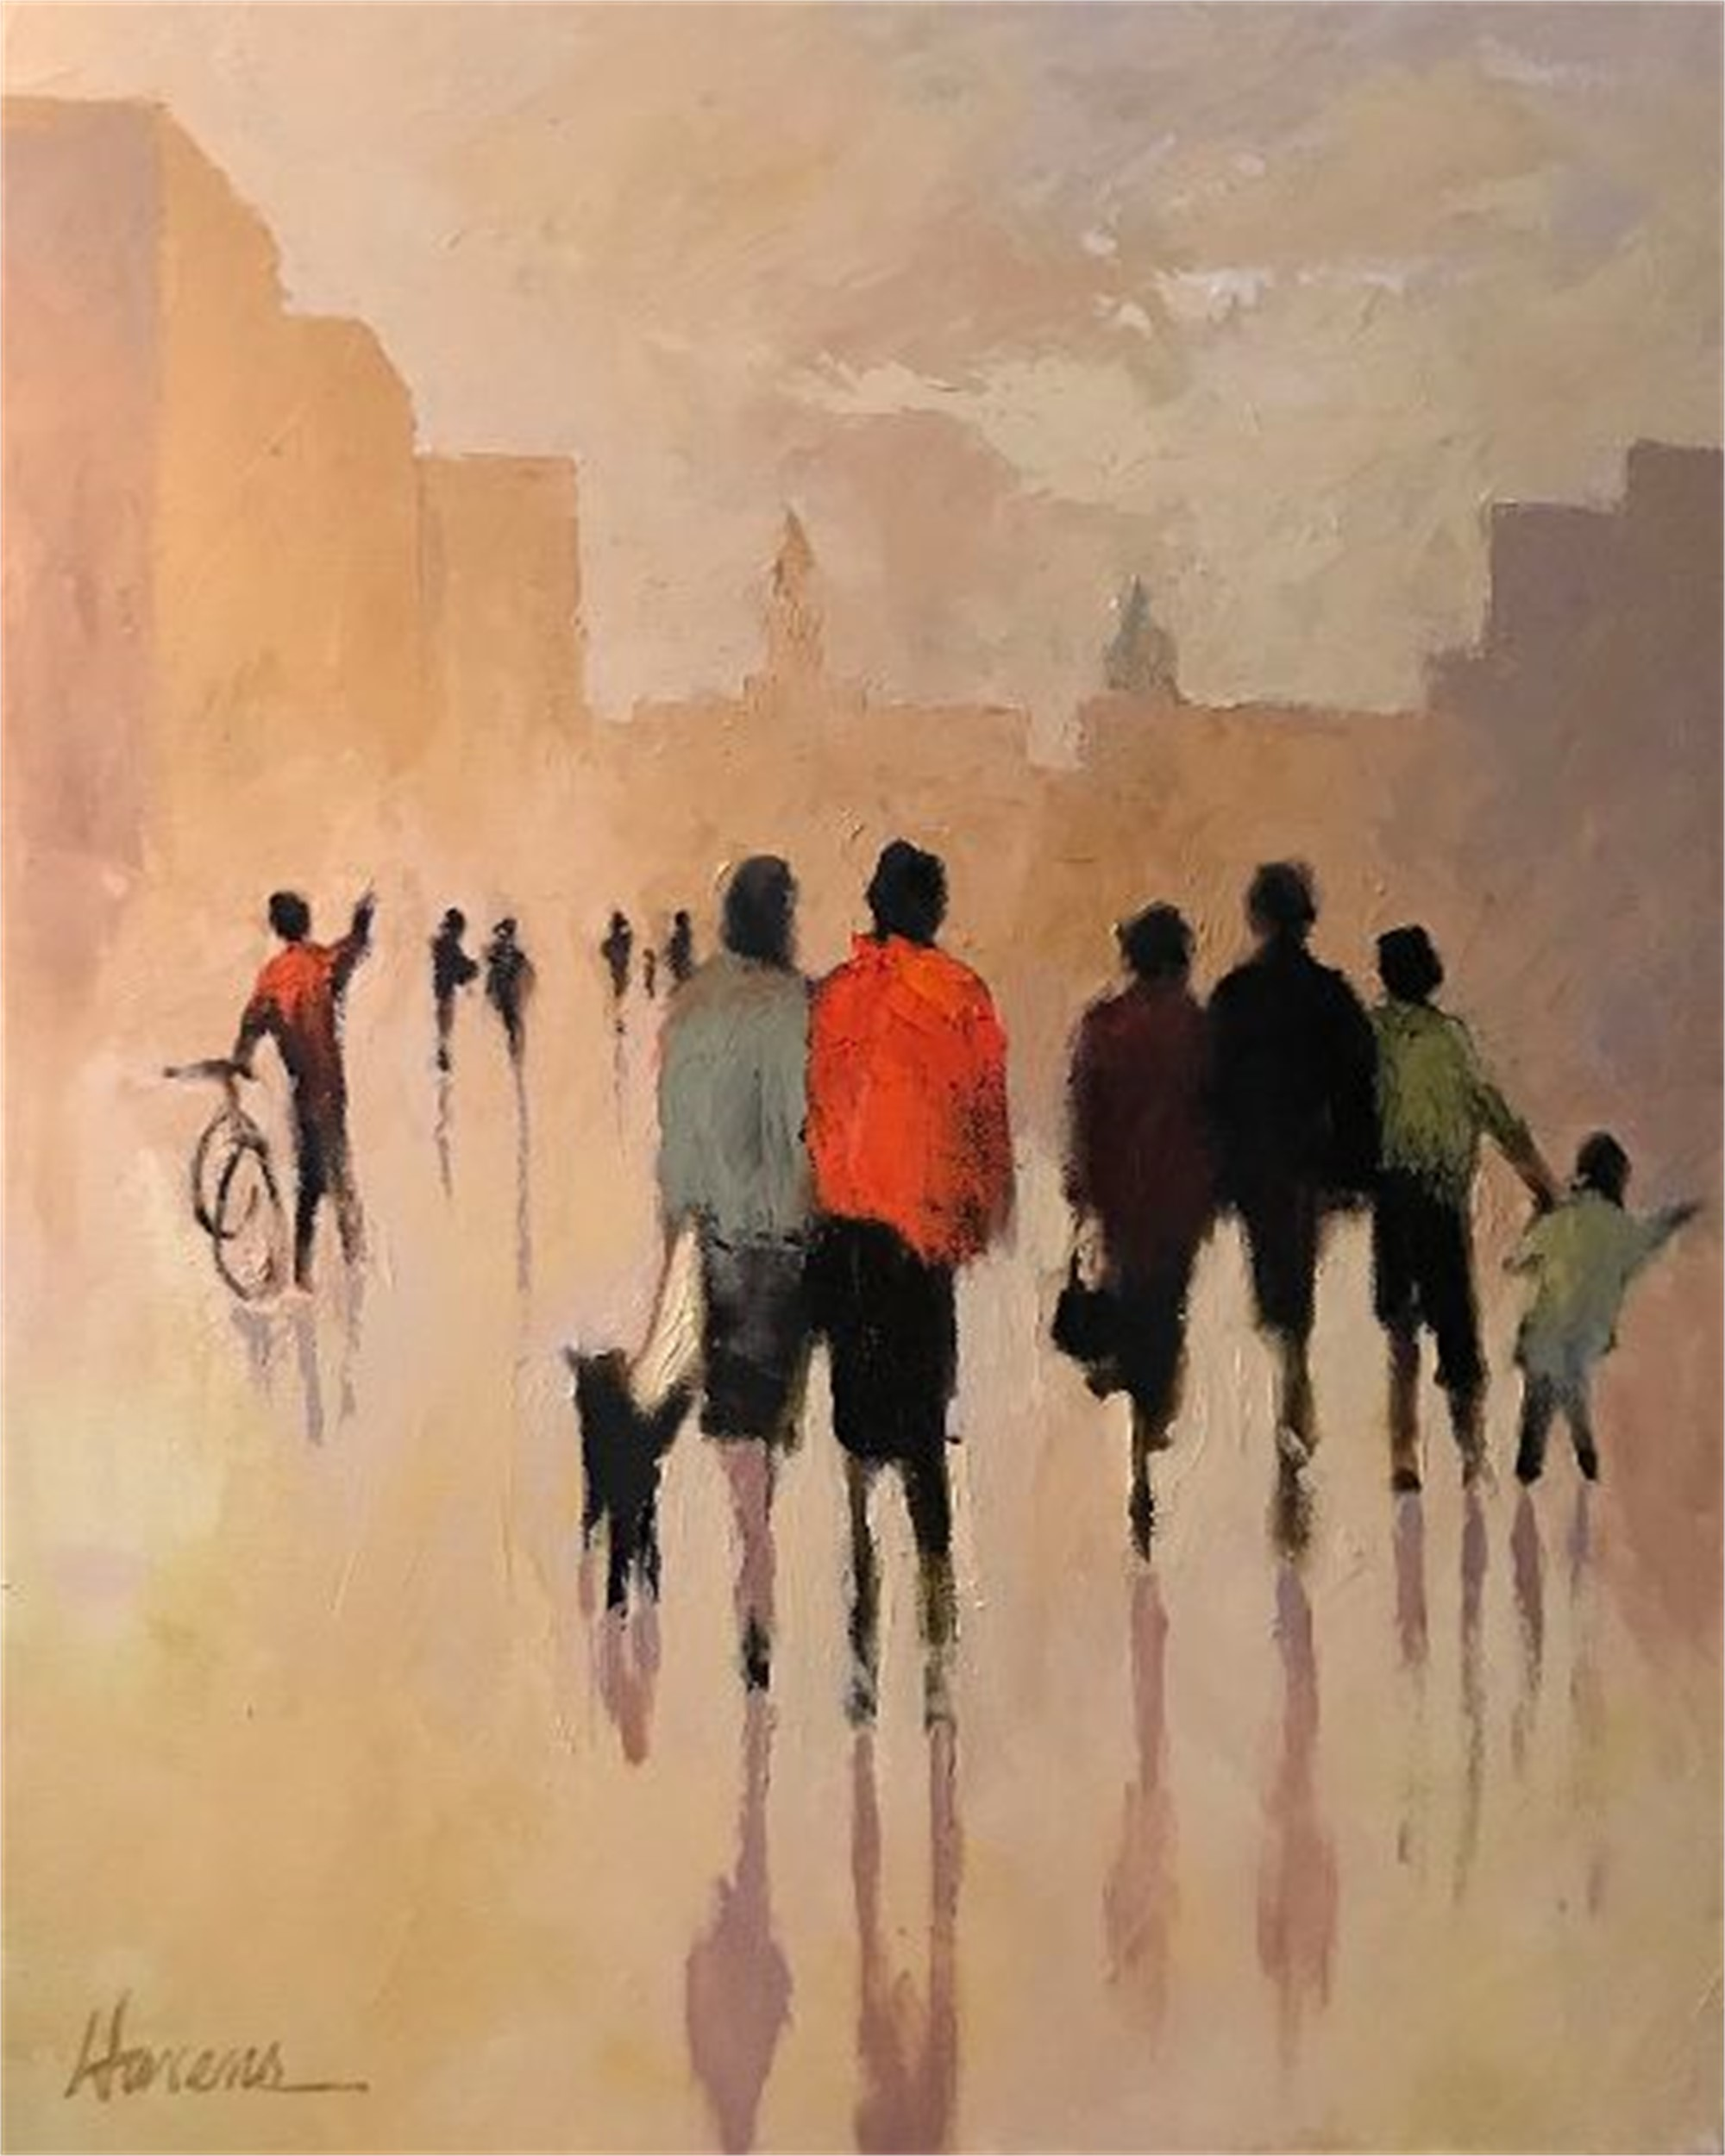 On Saturday by Betsy Havens